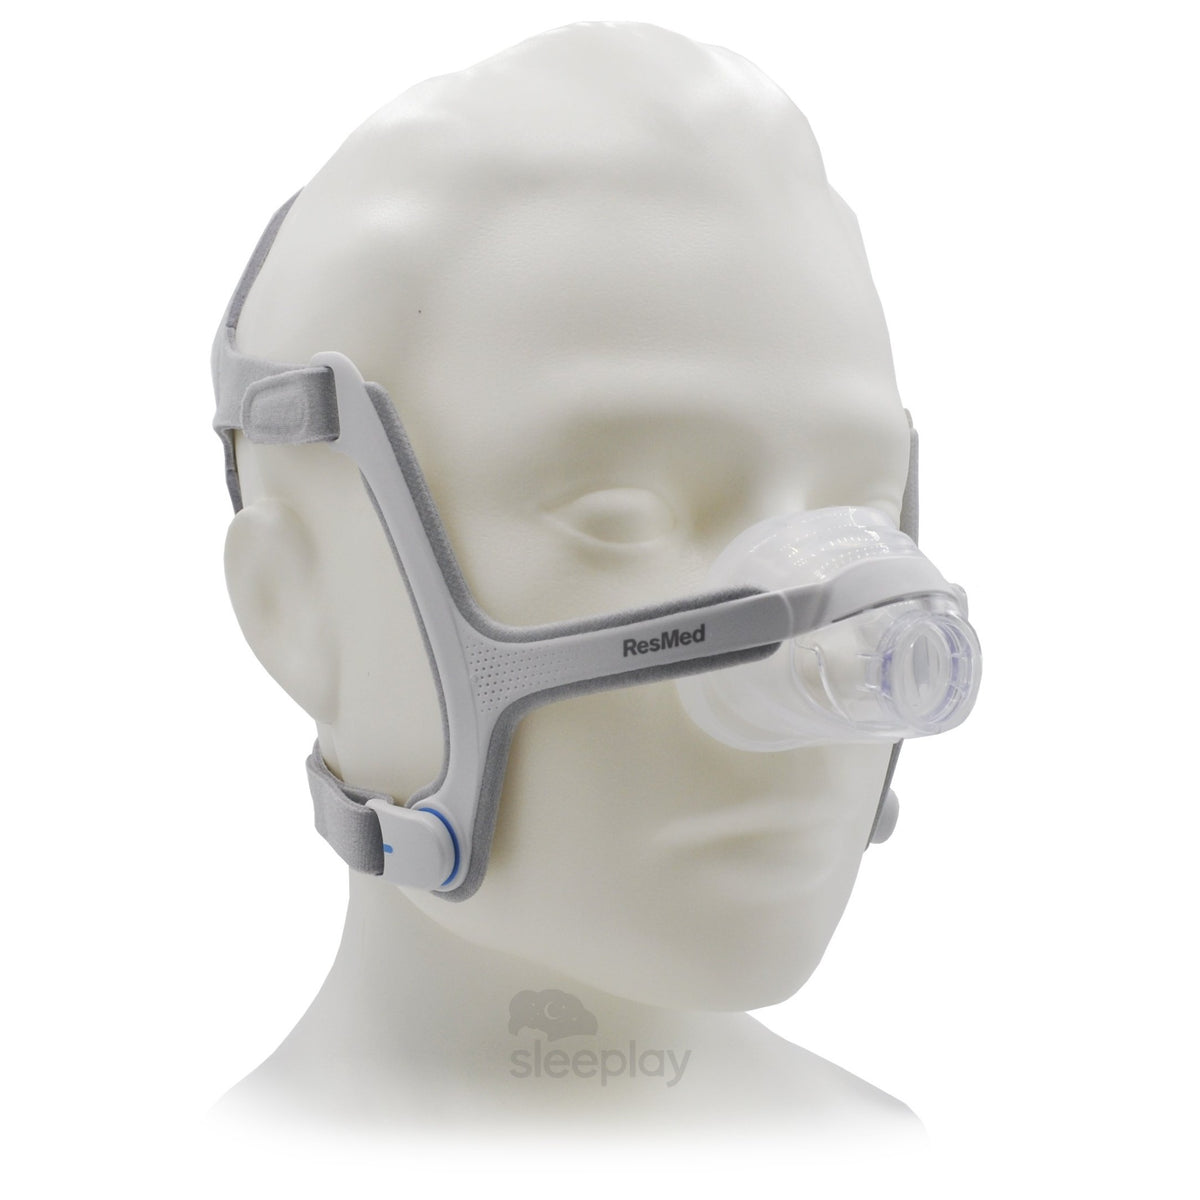 AirFit N20 Nasal CPAP Mask On Mannequin.